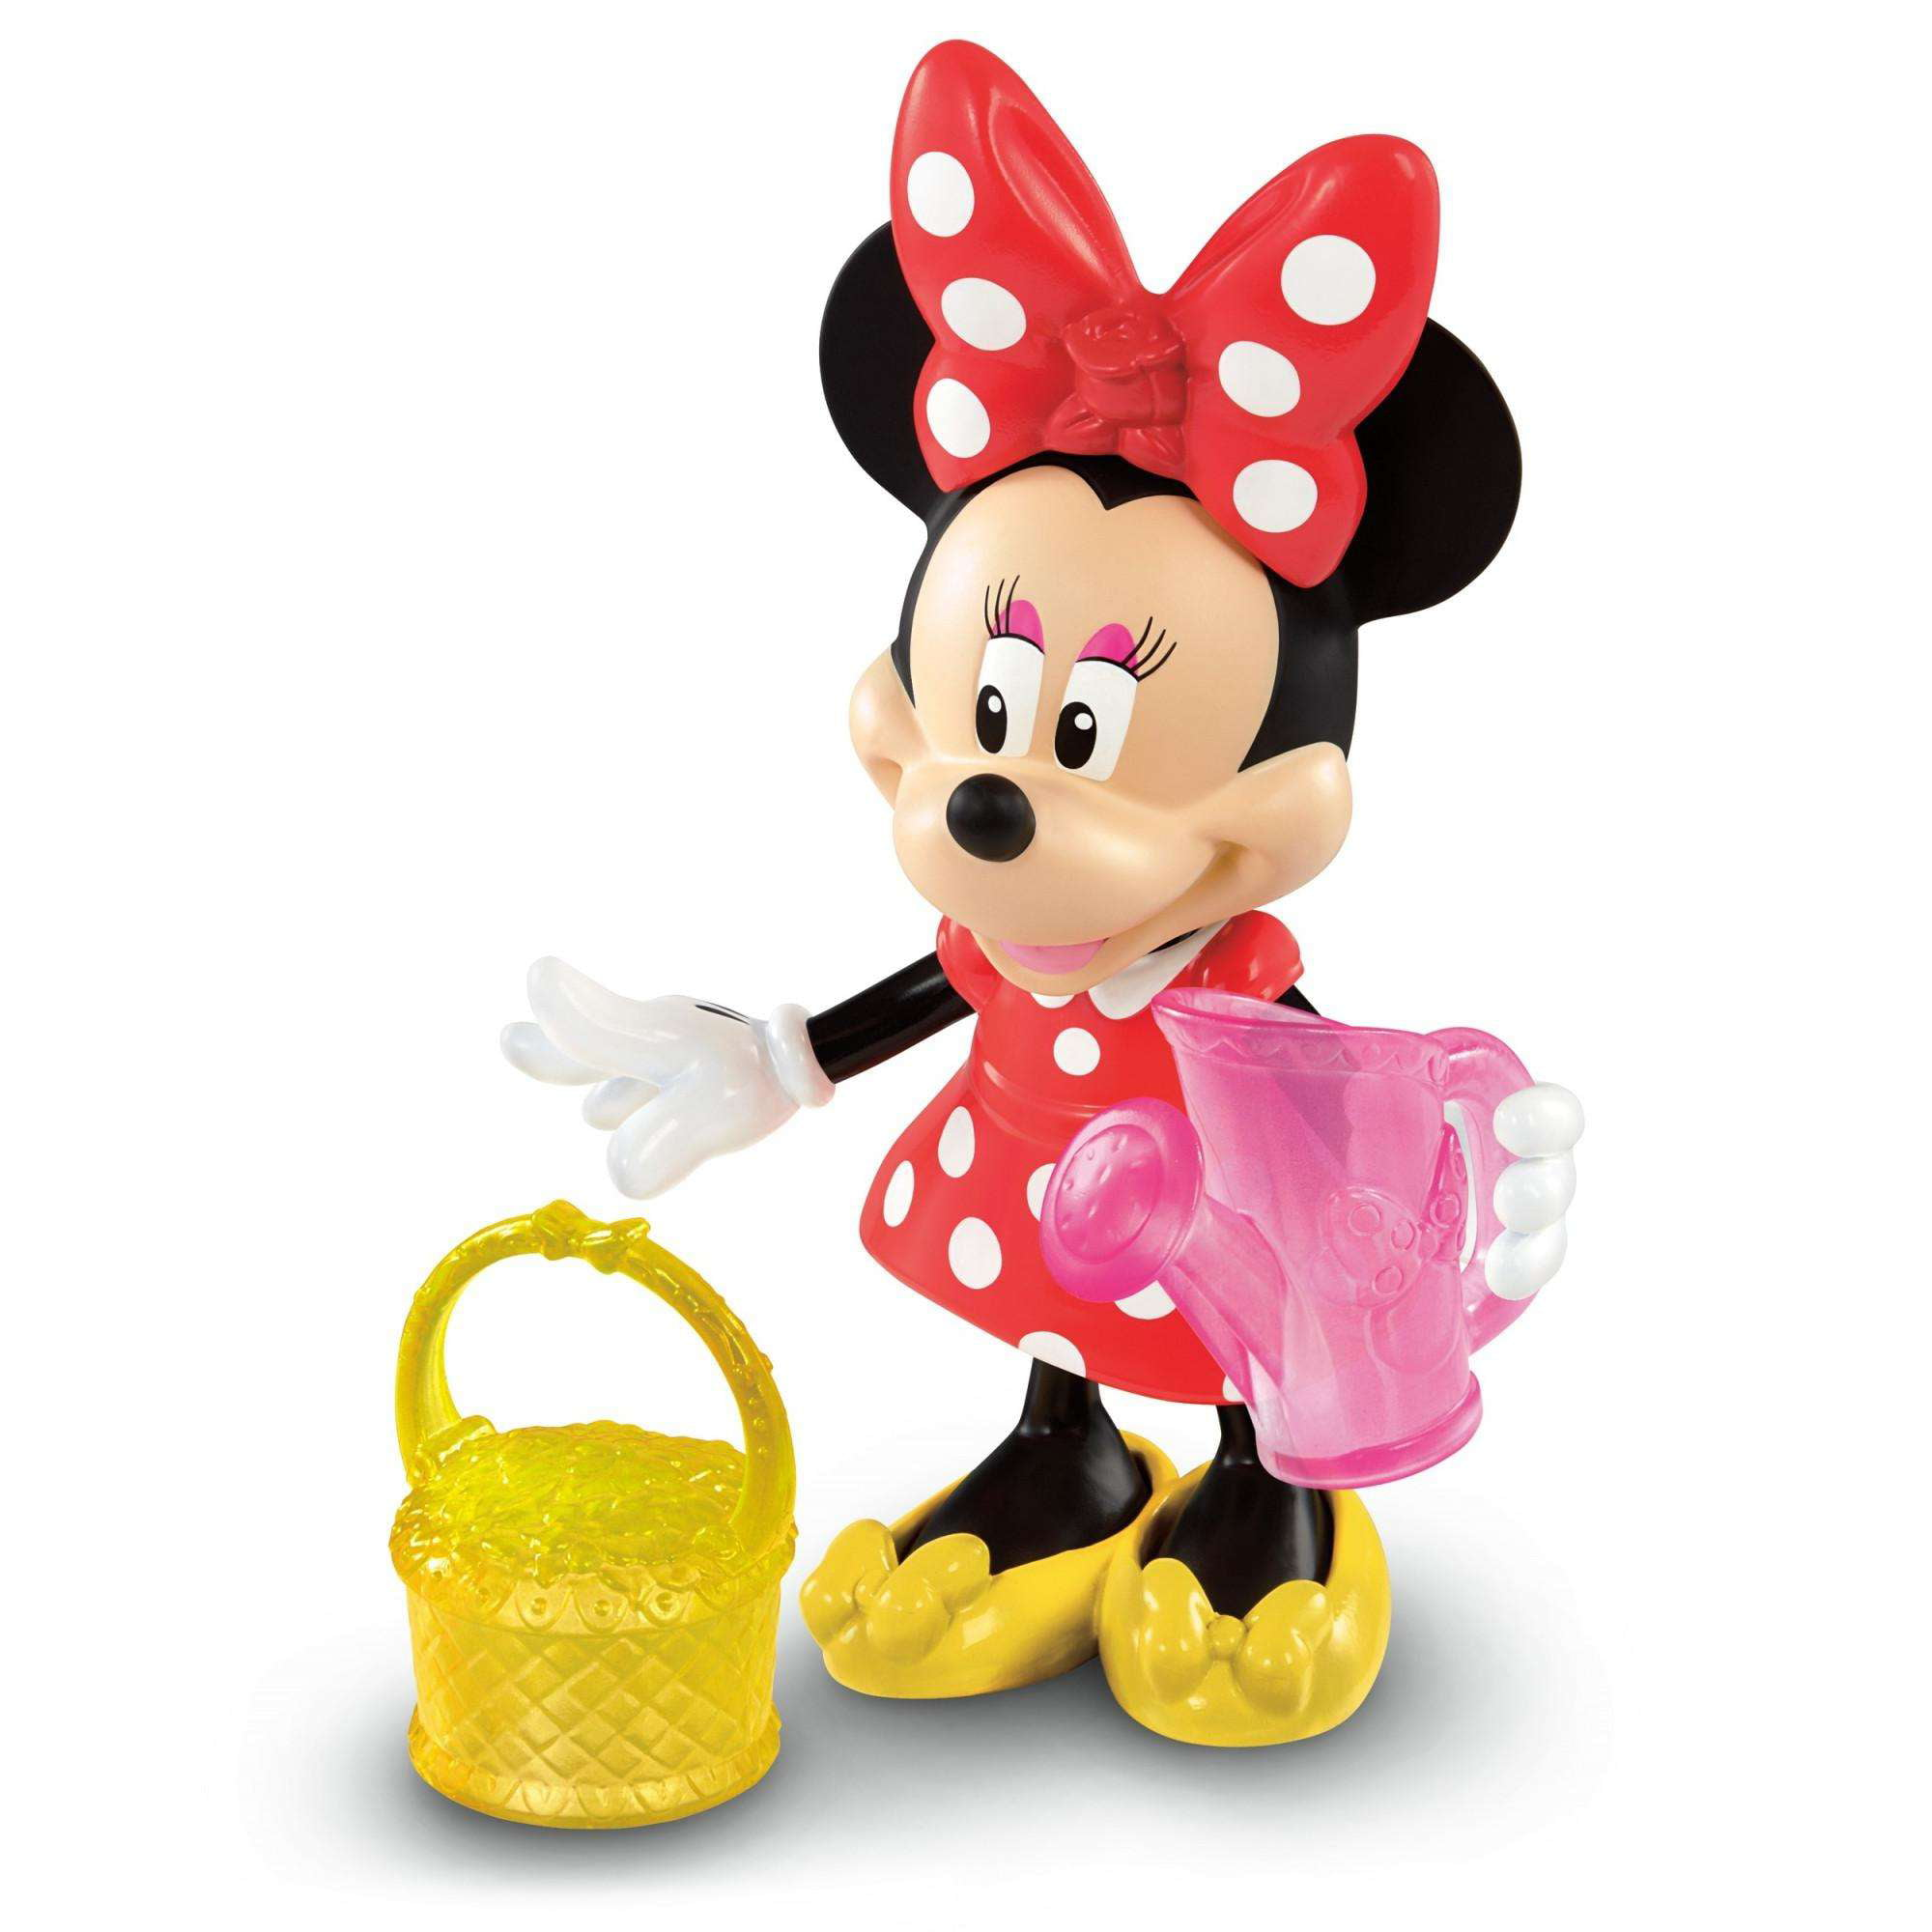 Disney Minnie Mouse Flower Garden Bow-Tique Play Set by FISHER PRICE